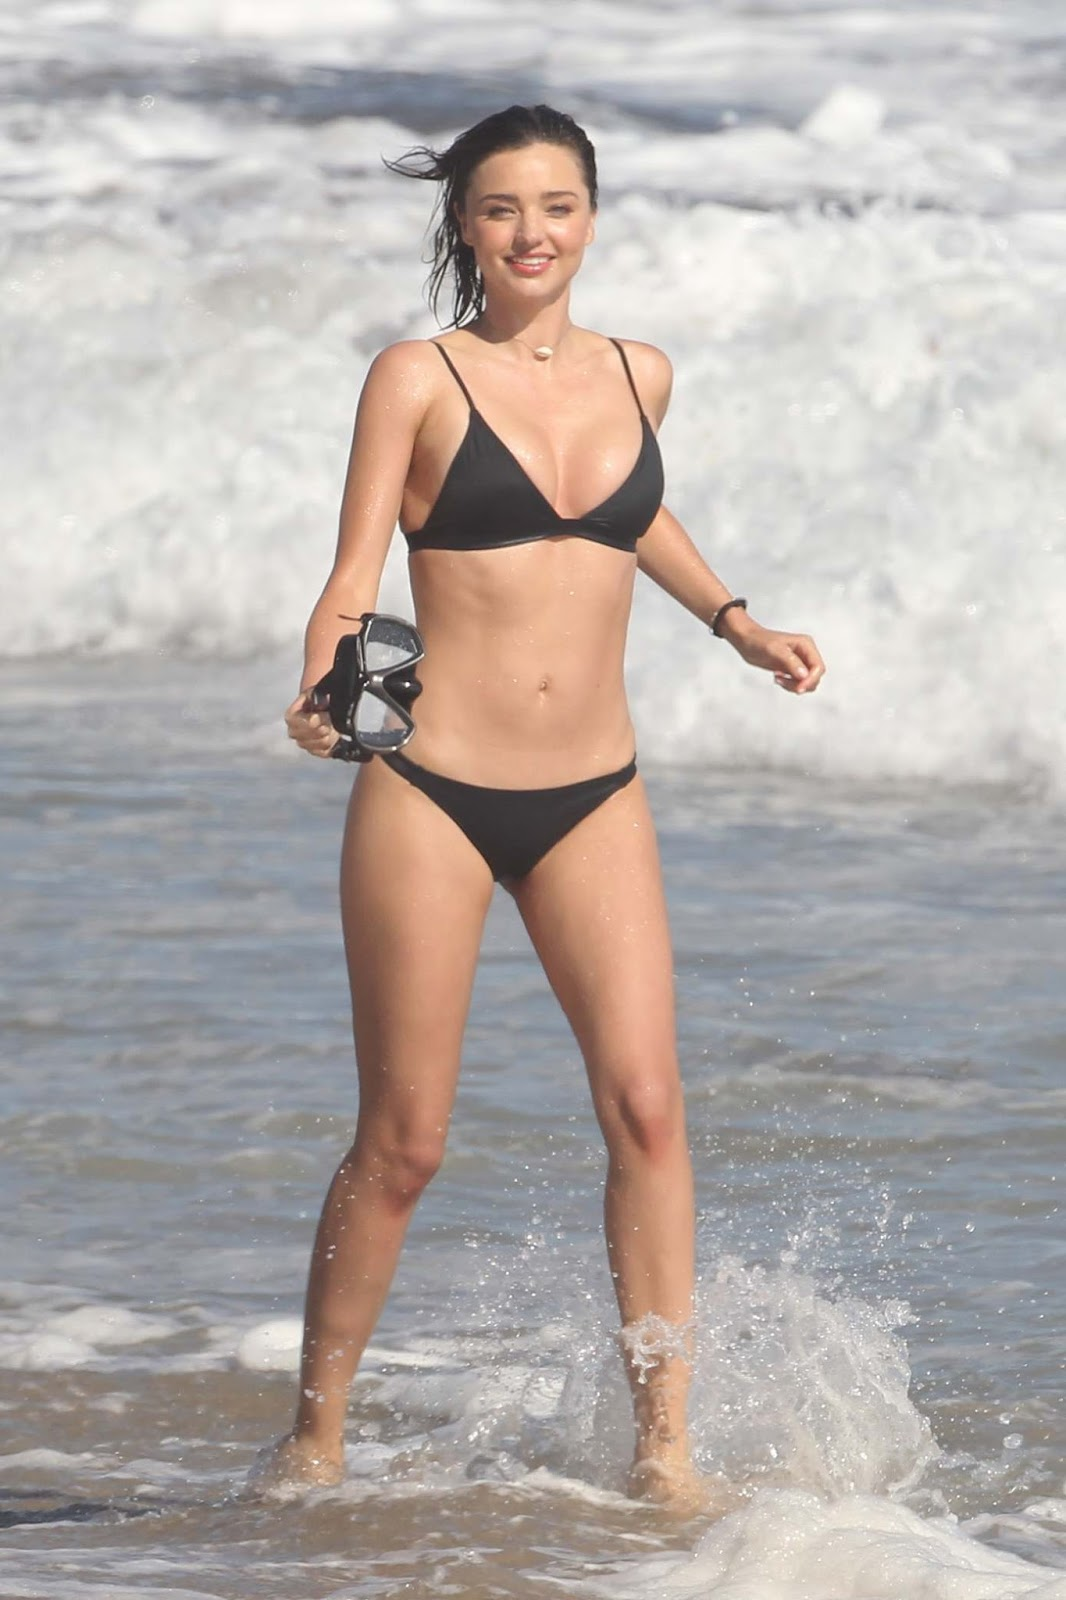 Miranda Kerr flaunts bikini body on Malibu beach